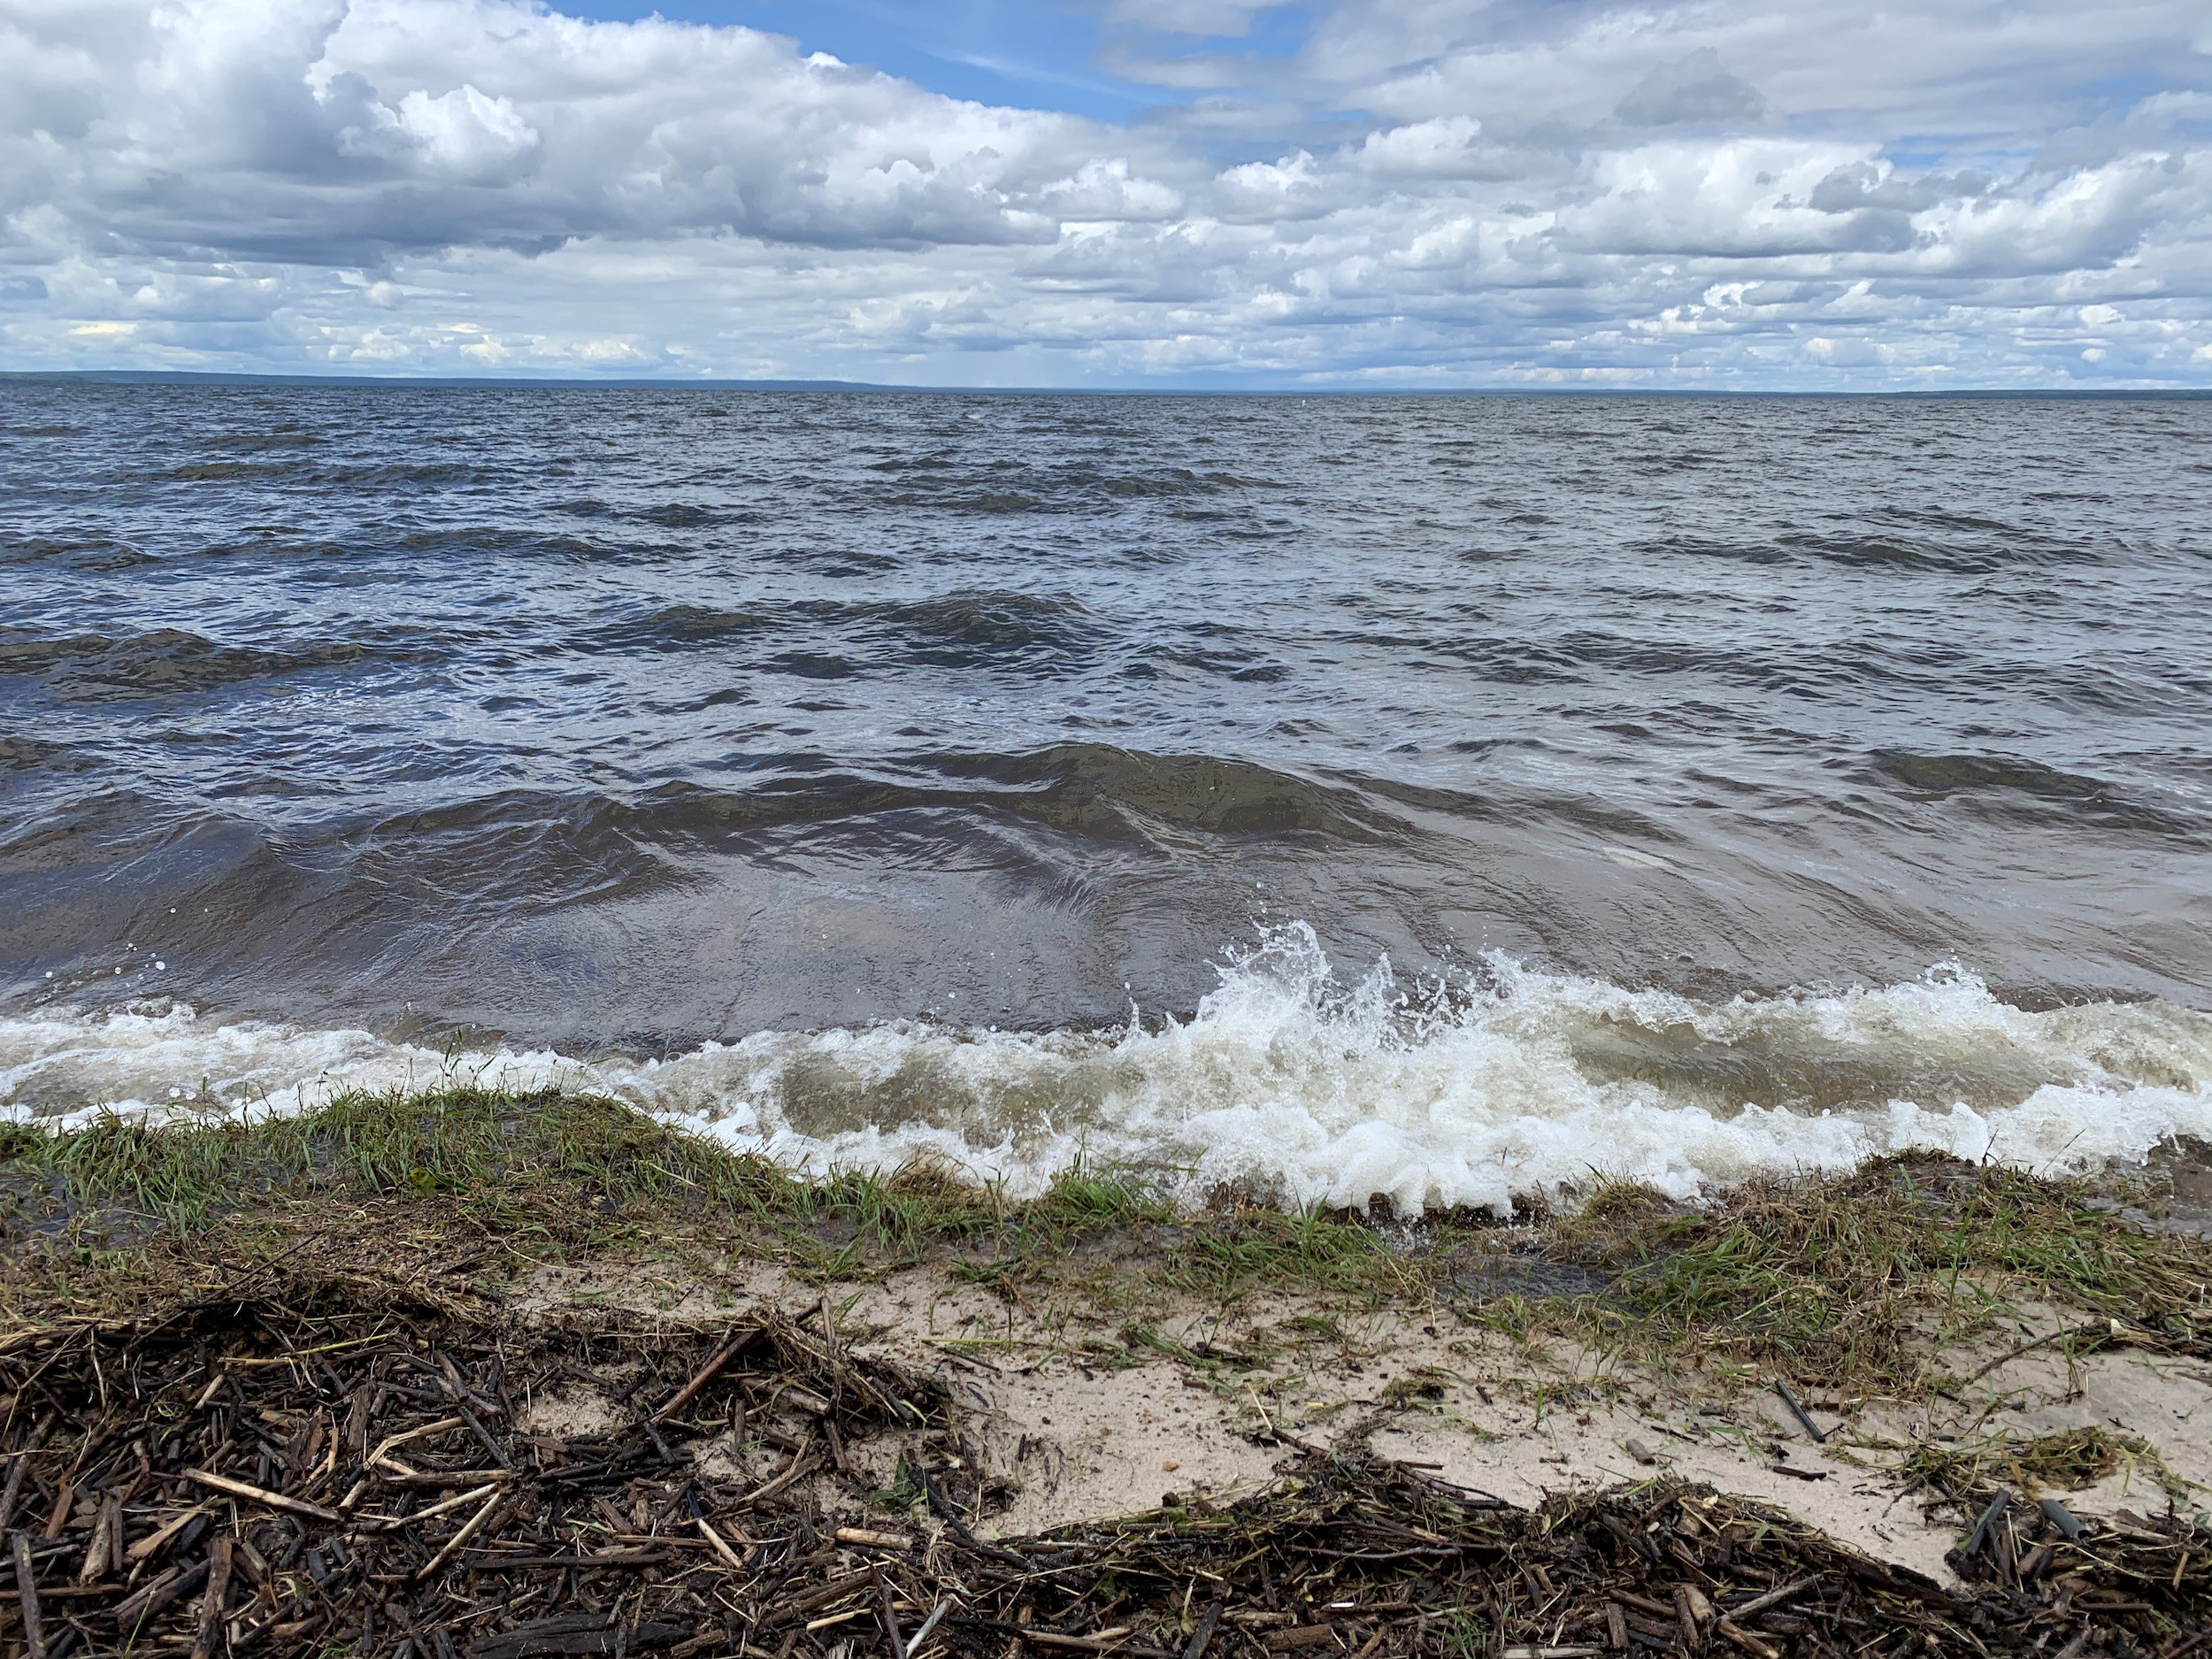 A peaceful sky in the background, lake waves crashing on the shore in the foreground.